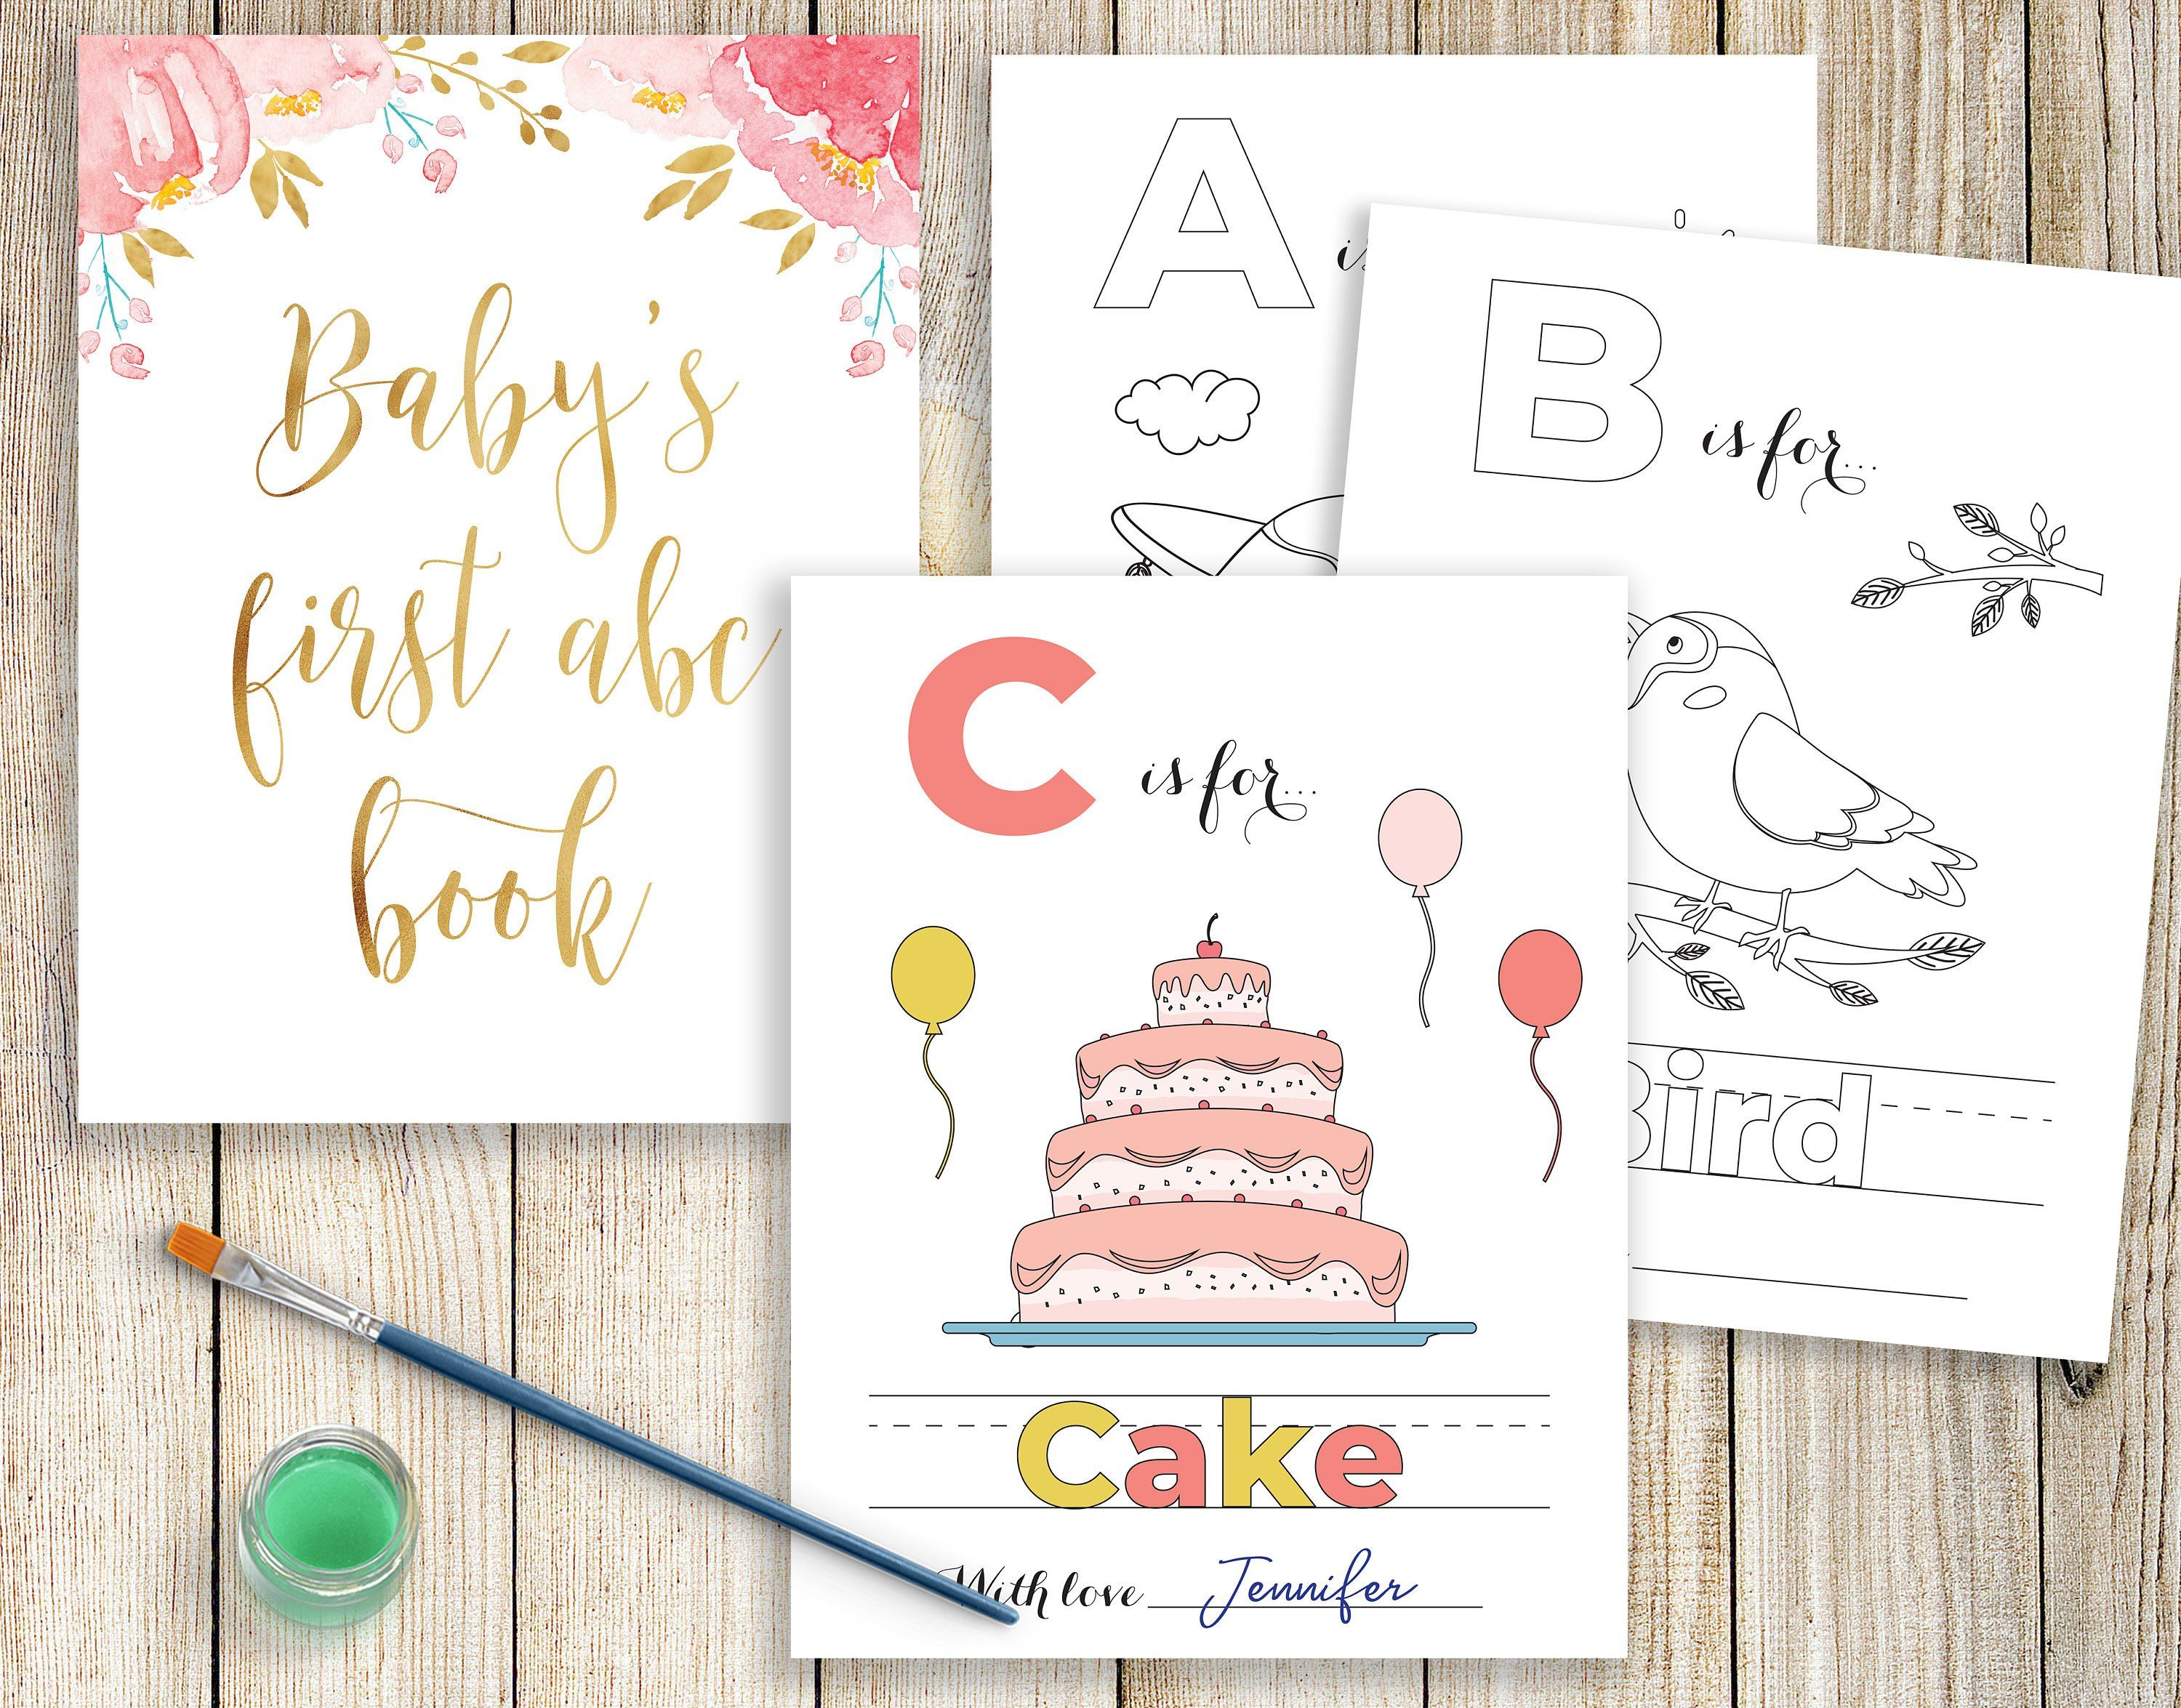 image about Abc Book Printable referred to as Babys Very first Alphabet E book, Little one Shower ABC Guide, Printable